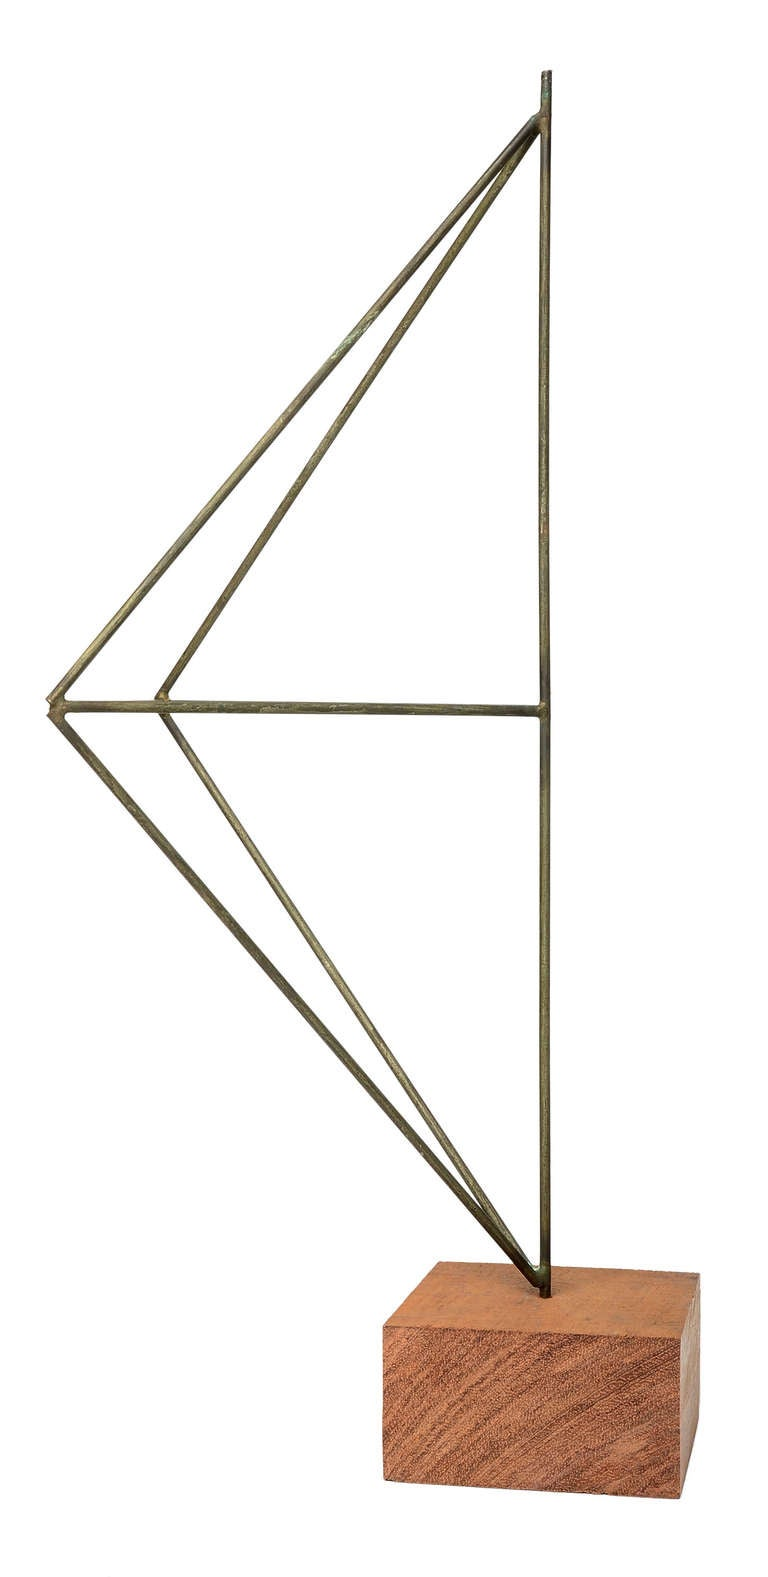 Mid-Century Modern Architectural Harry Bertoia Sculpture in Nickel For Sale